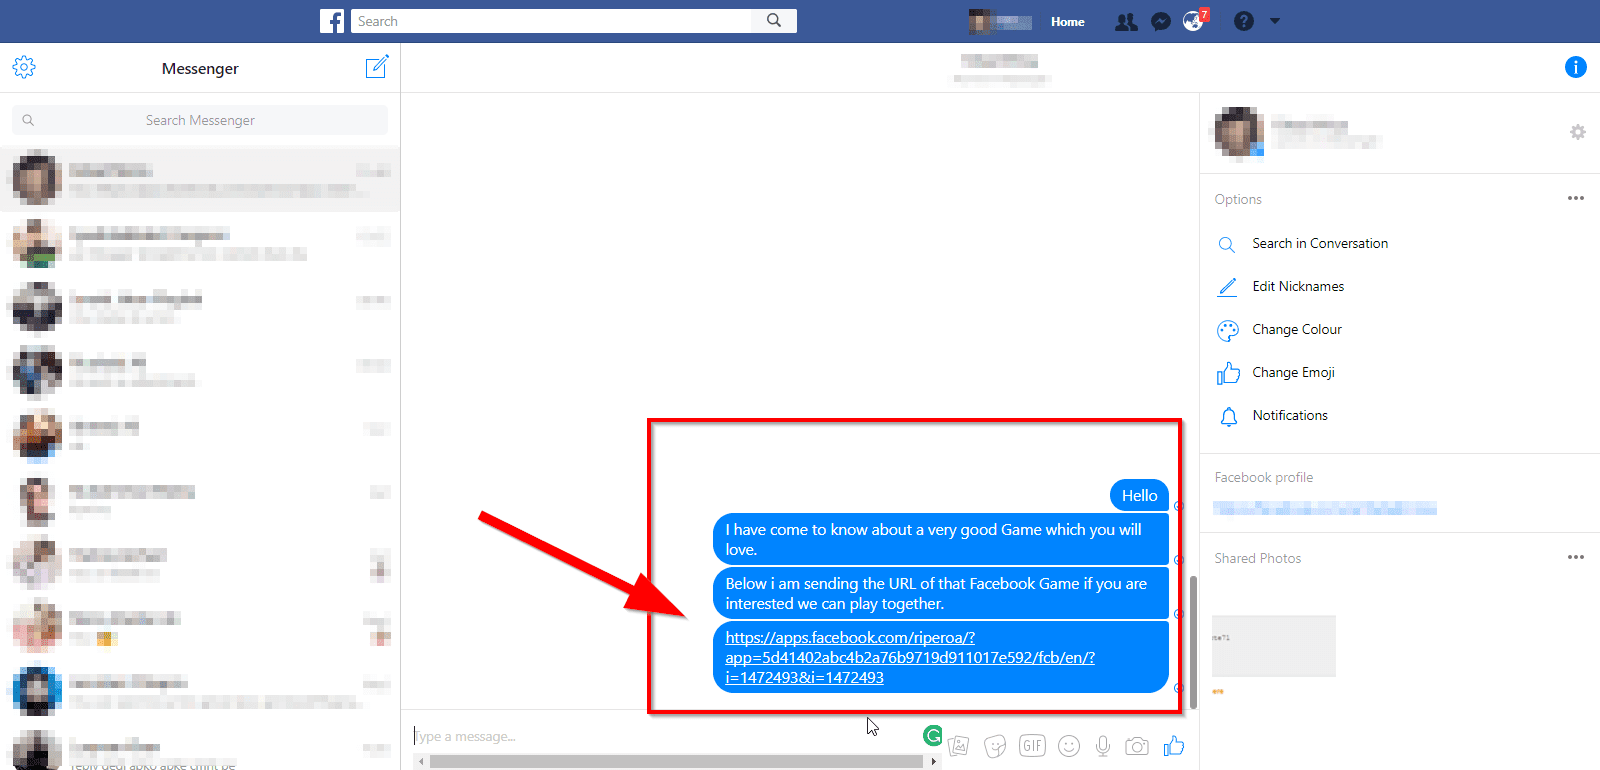 Z Shadow - Hack Facebook EASILY (100% Working) 2017